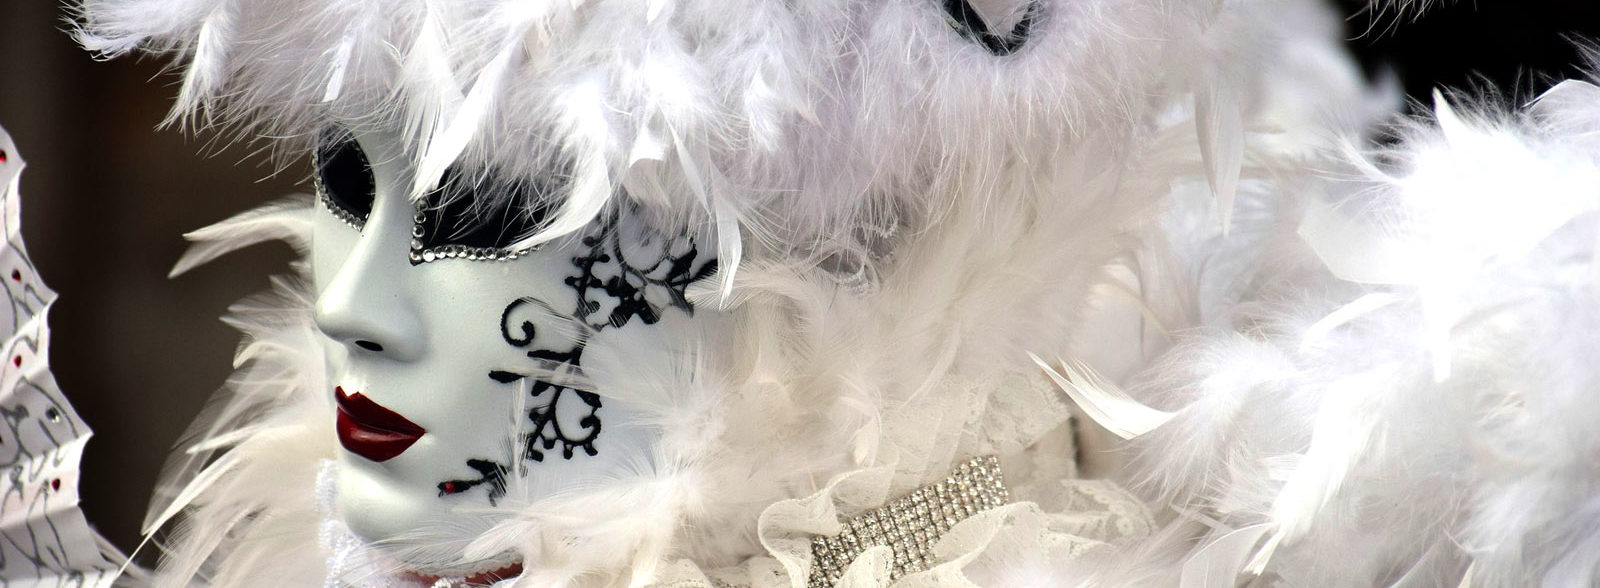 Venice Carnival costumes:  where to rent a historical one